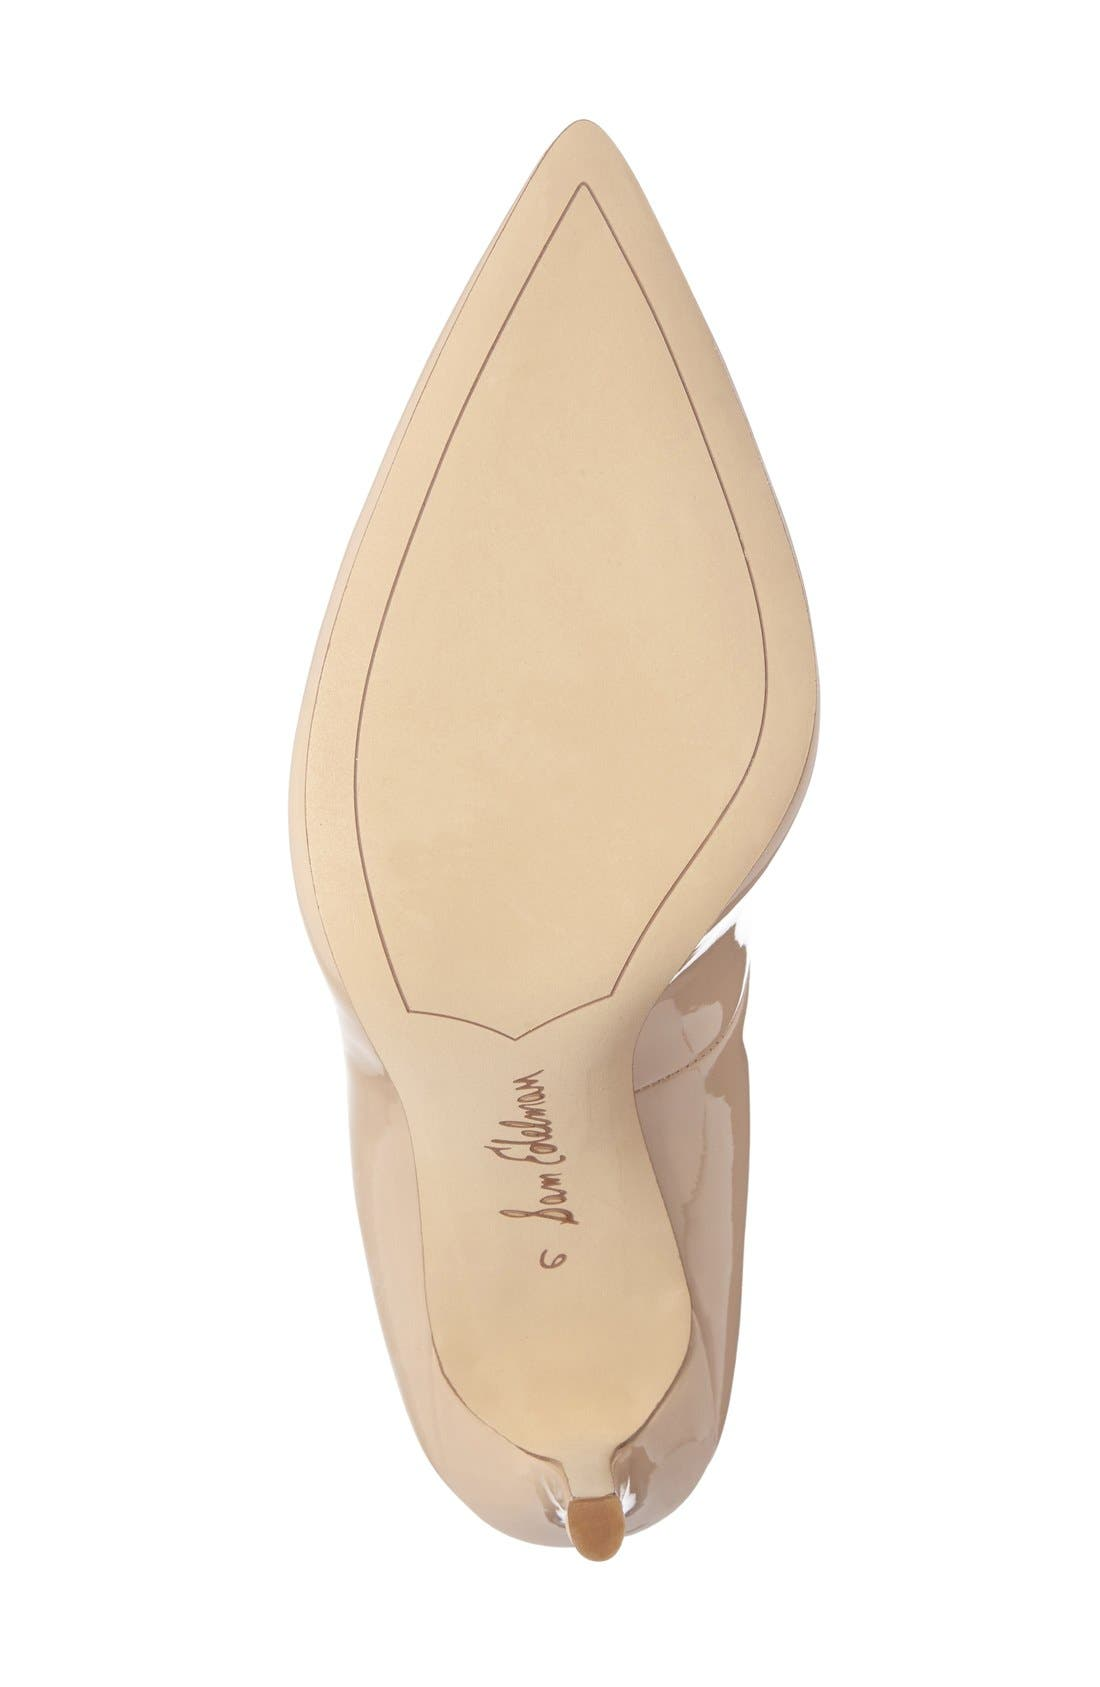 SAM EDELMAN, Hazel Pointy Toe Pump, Alternate thumbnail 7, color, NUDE LINEN PATENT LEATHER